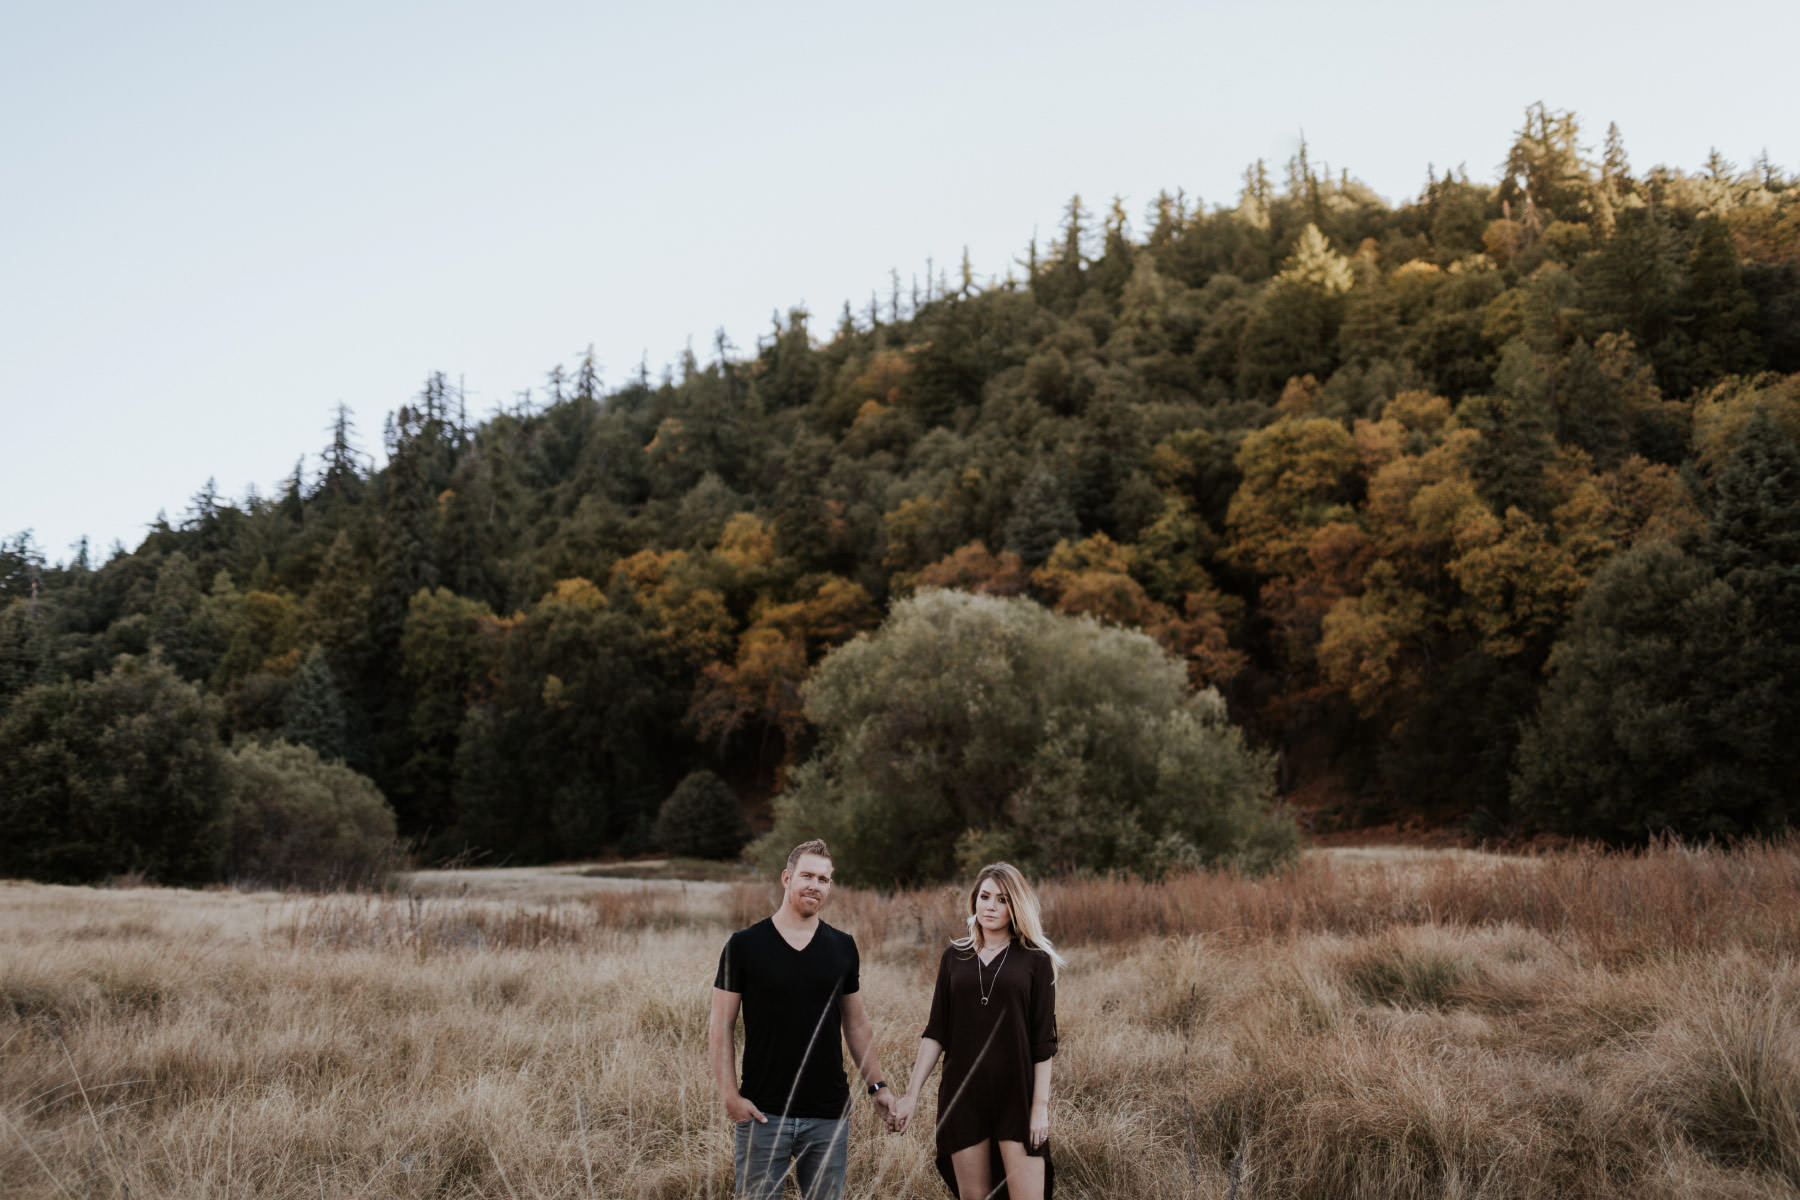 Couple holding hands in a forest meadow on Palomar Mountain